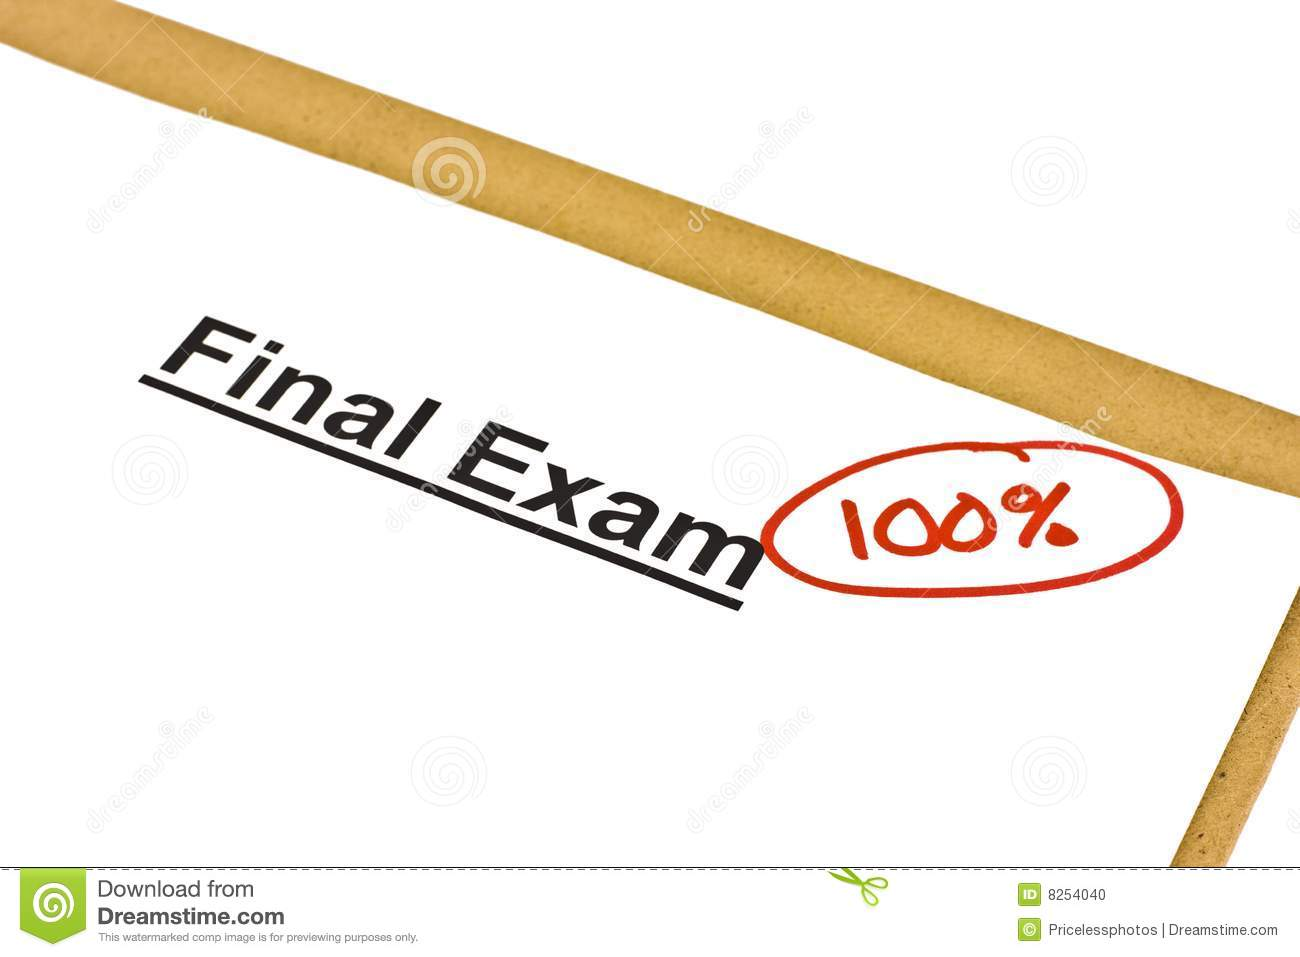 com 100 exam 2 Knowledge/innovation means higher paying jobs, increasing the strength of middle class consumption, and thus the strength of the economy.